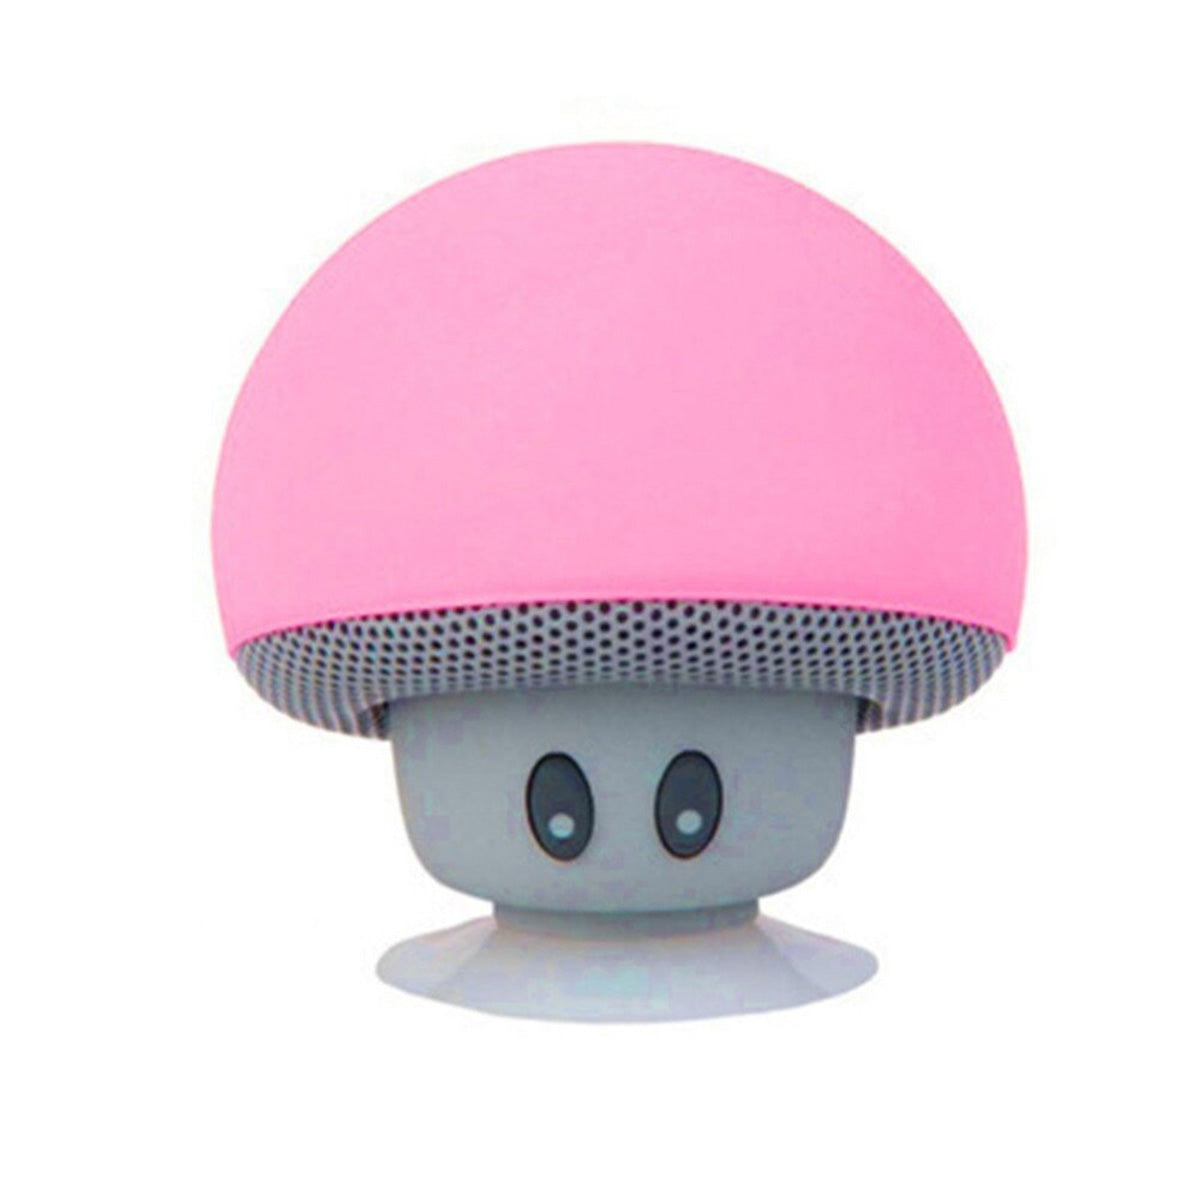 Portable Bluetooth Phone Support Mini Mushroom Speaker